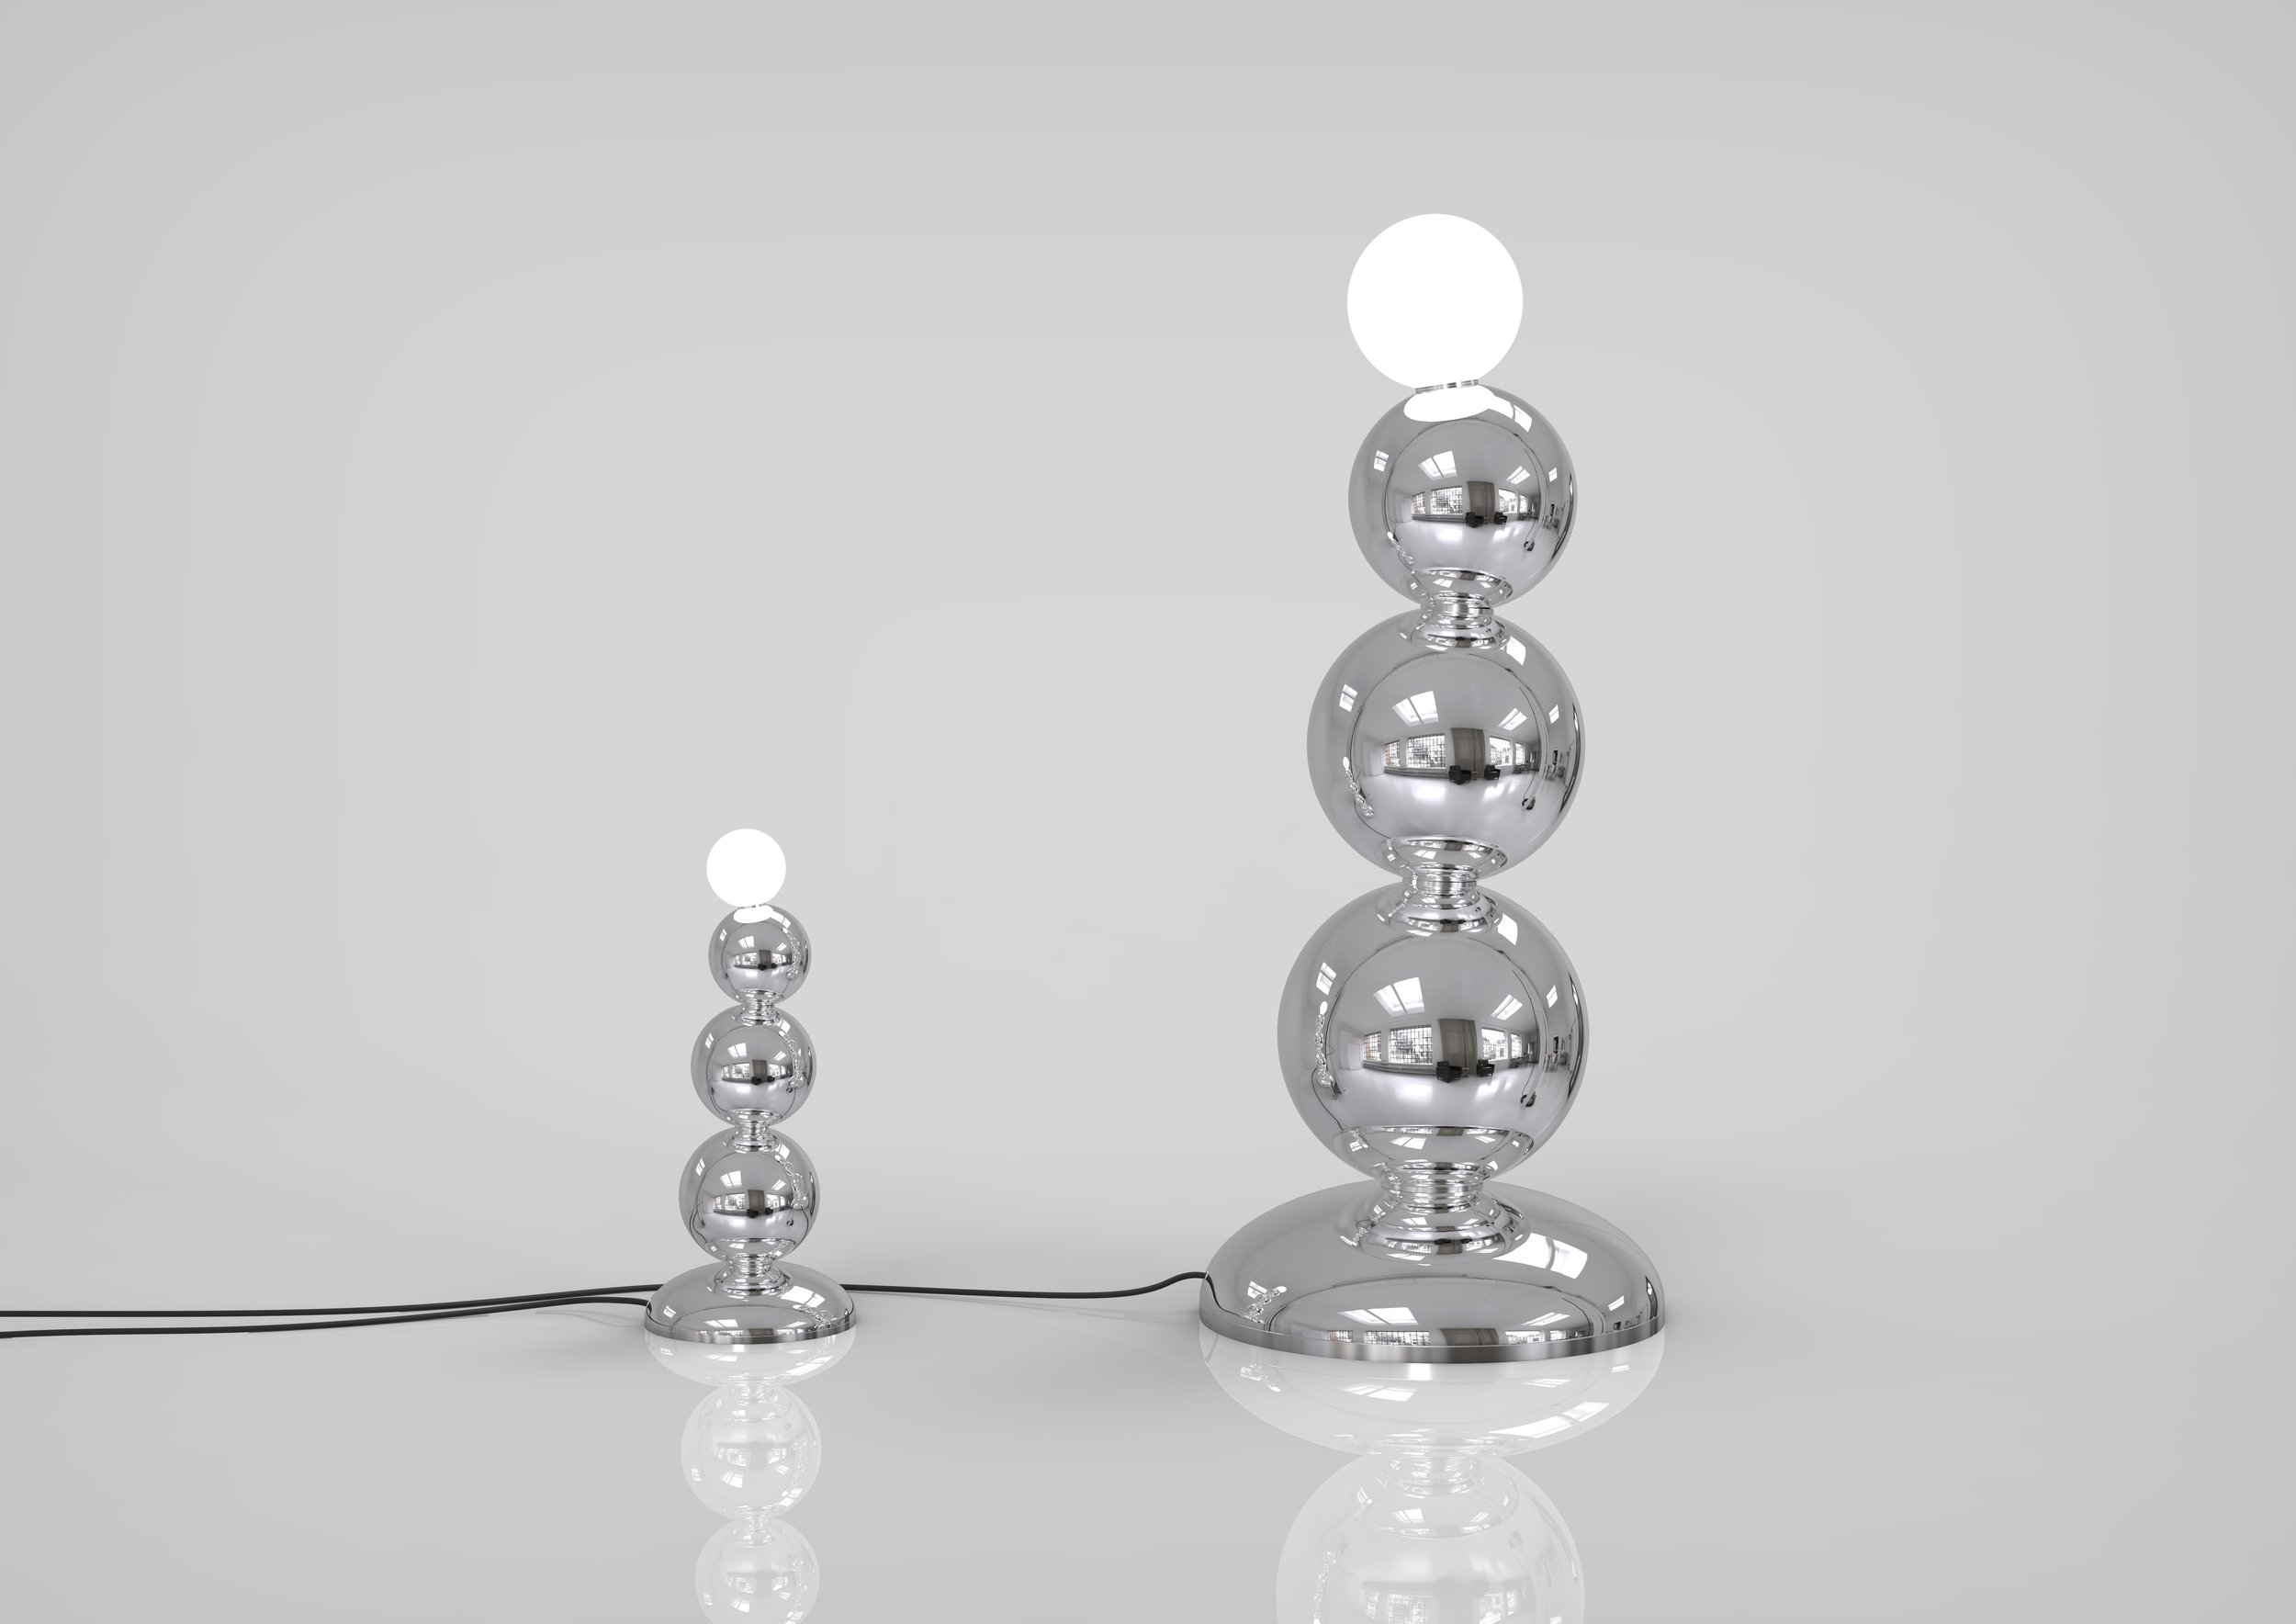 MONSTER BEADS - 2018Large - 125x45cmSmall - 45x21cmFloor lampFloor lamp made by traditional technique silvered glass production. Objects are made in various colors and limited edition.